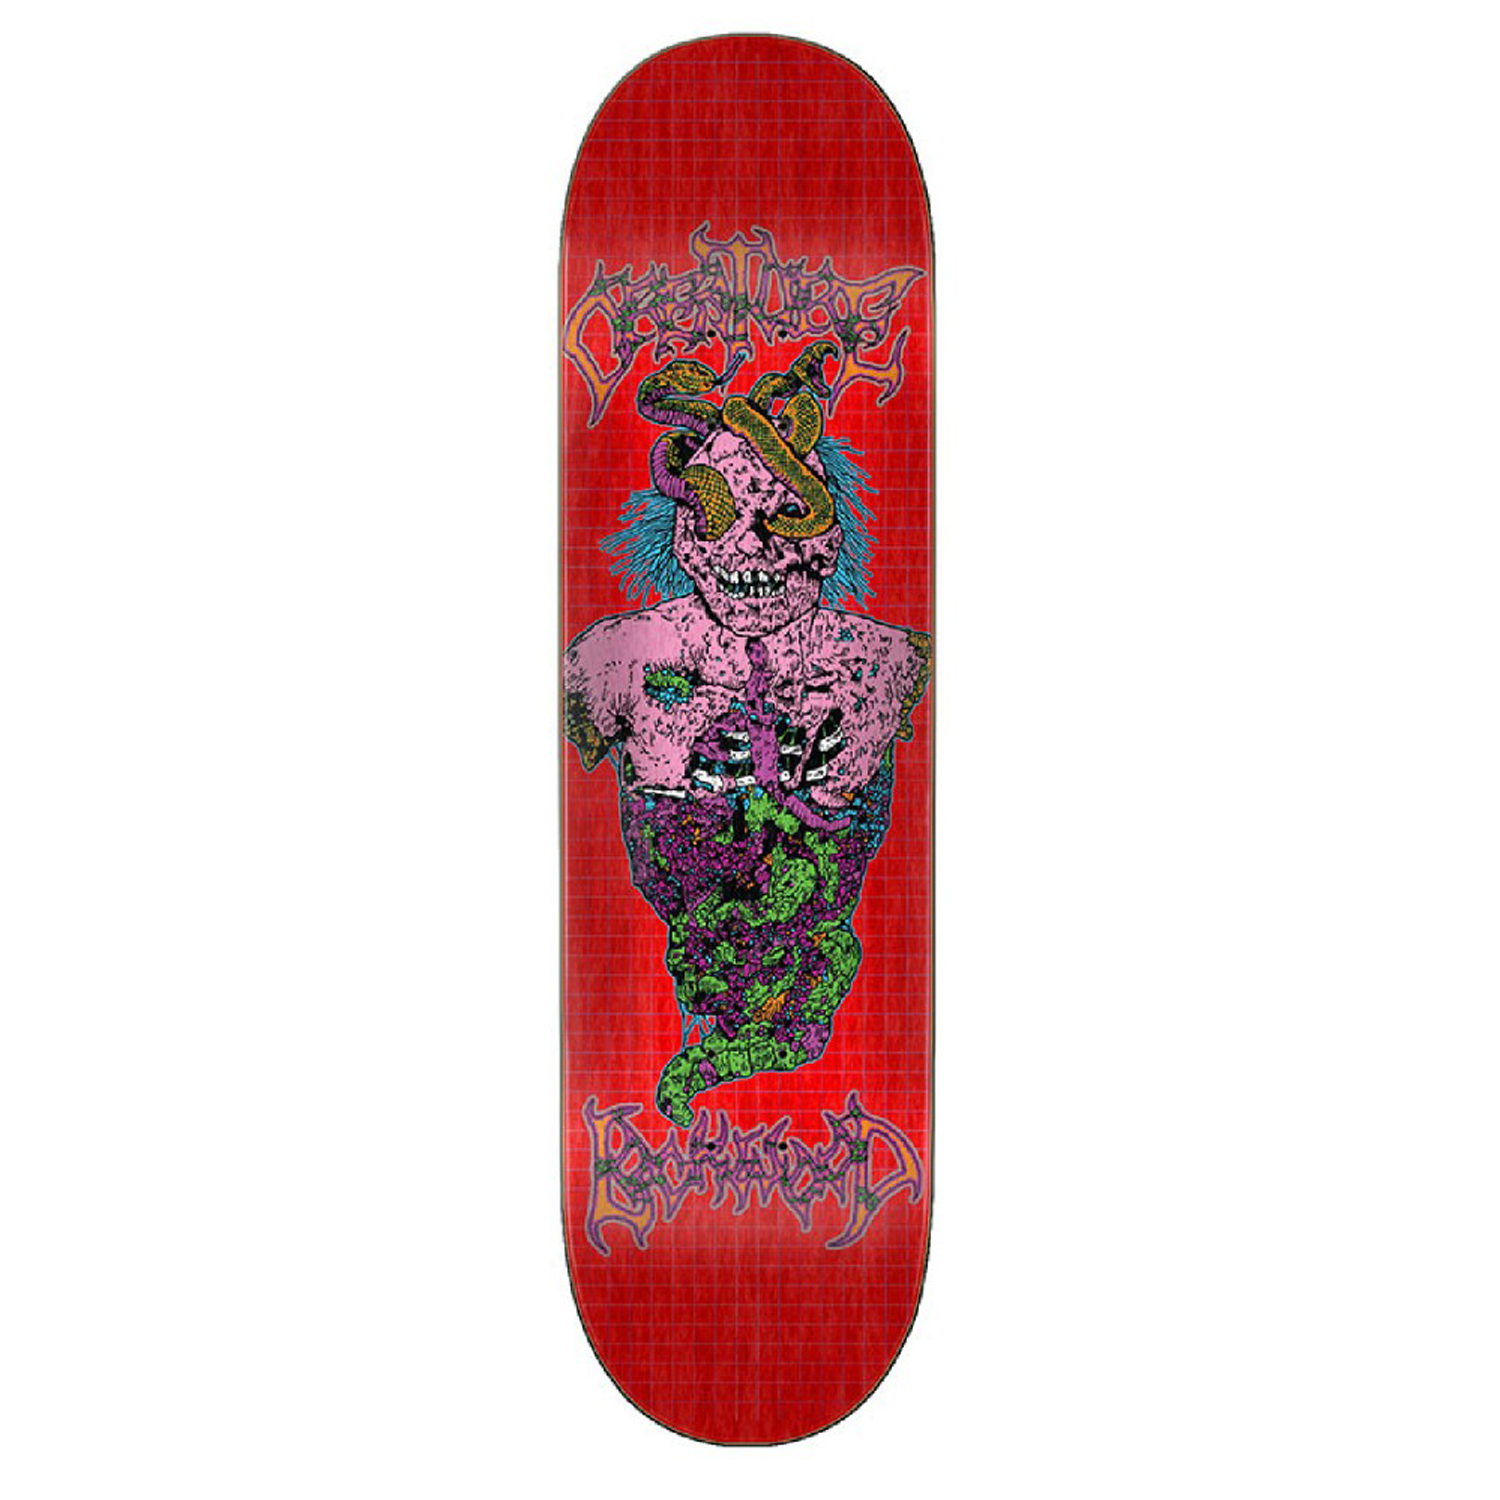 Creature Lockwood Cadaver Deck - 8.25 Product Photo #1